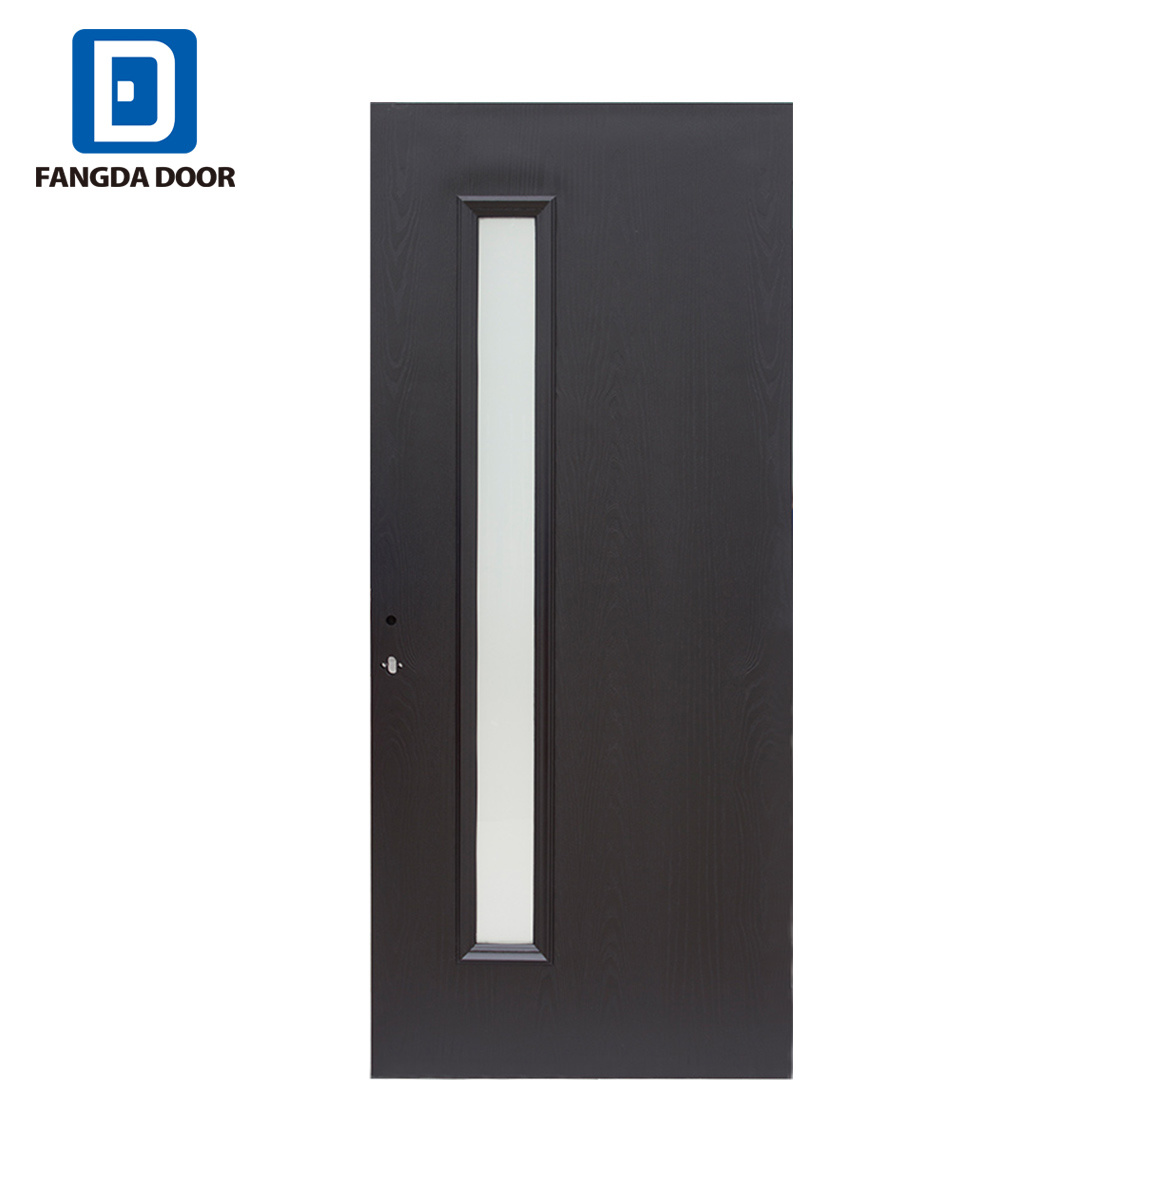 American Oak Wood Grain Fiberglass Contemporary Style Entry Door With Left Vertical Glass Panel China Fiberglass Door American Style Entry Door Made In China Com